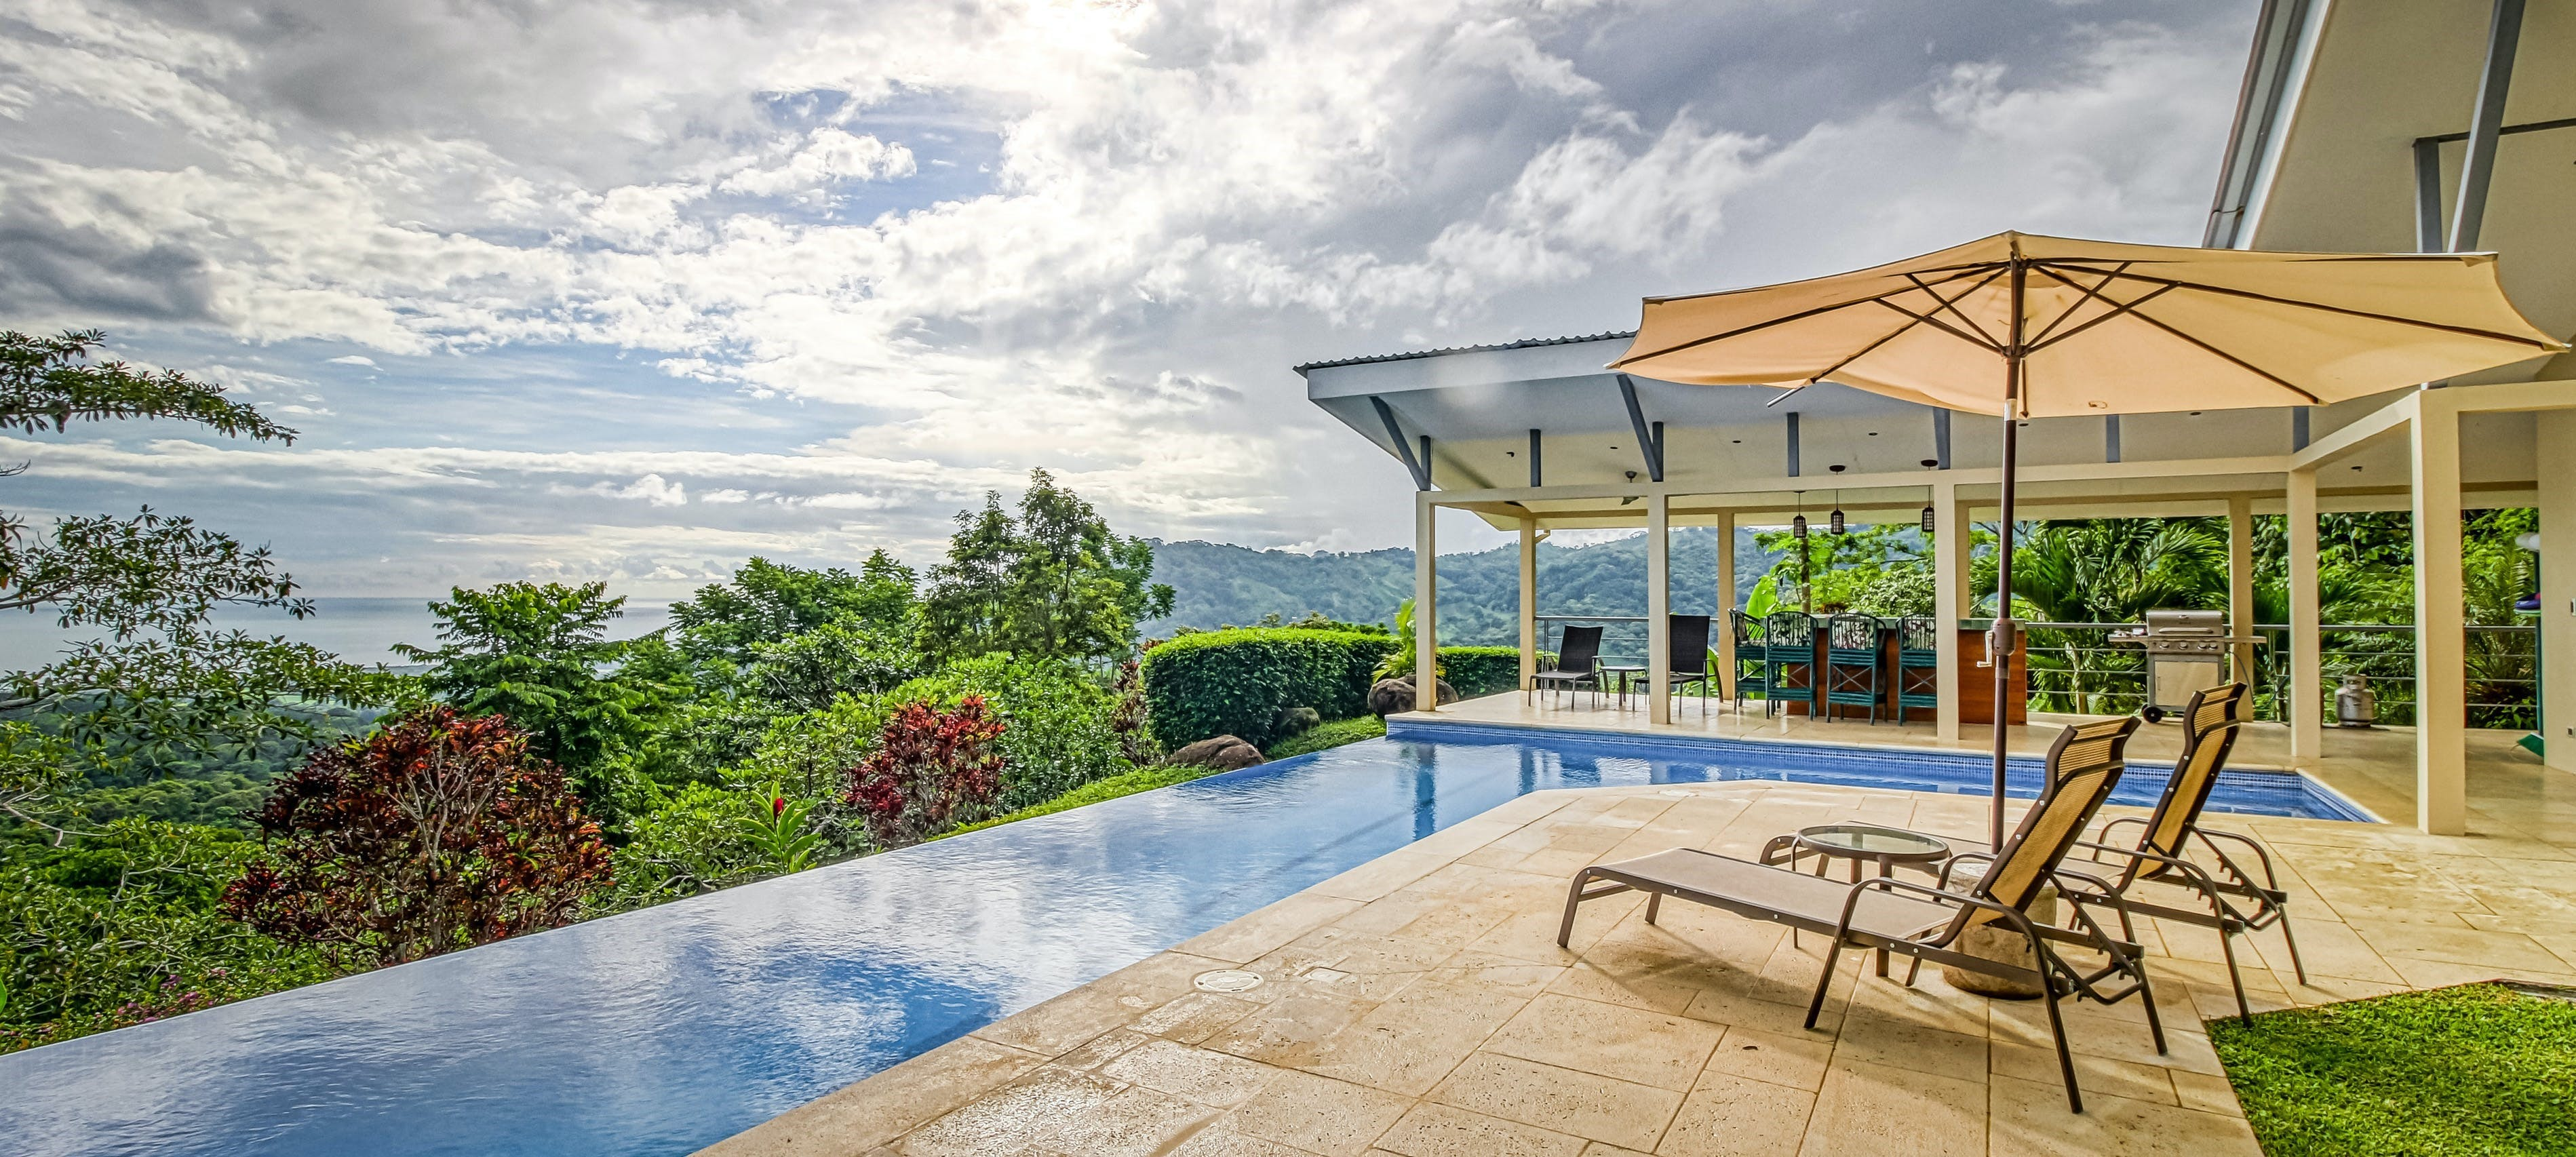 backyard infinity pool of costa rica vacation home